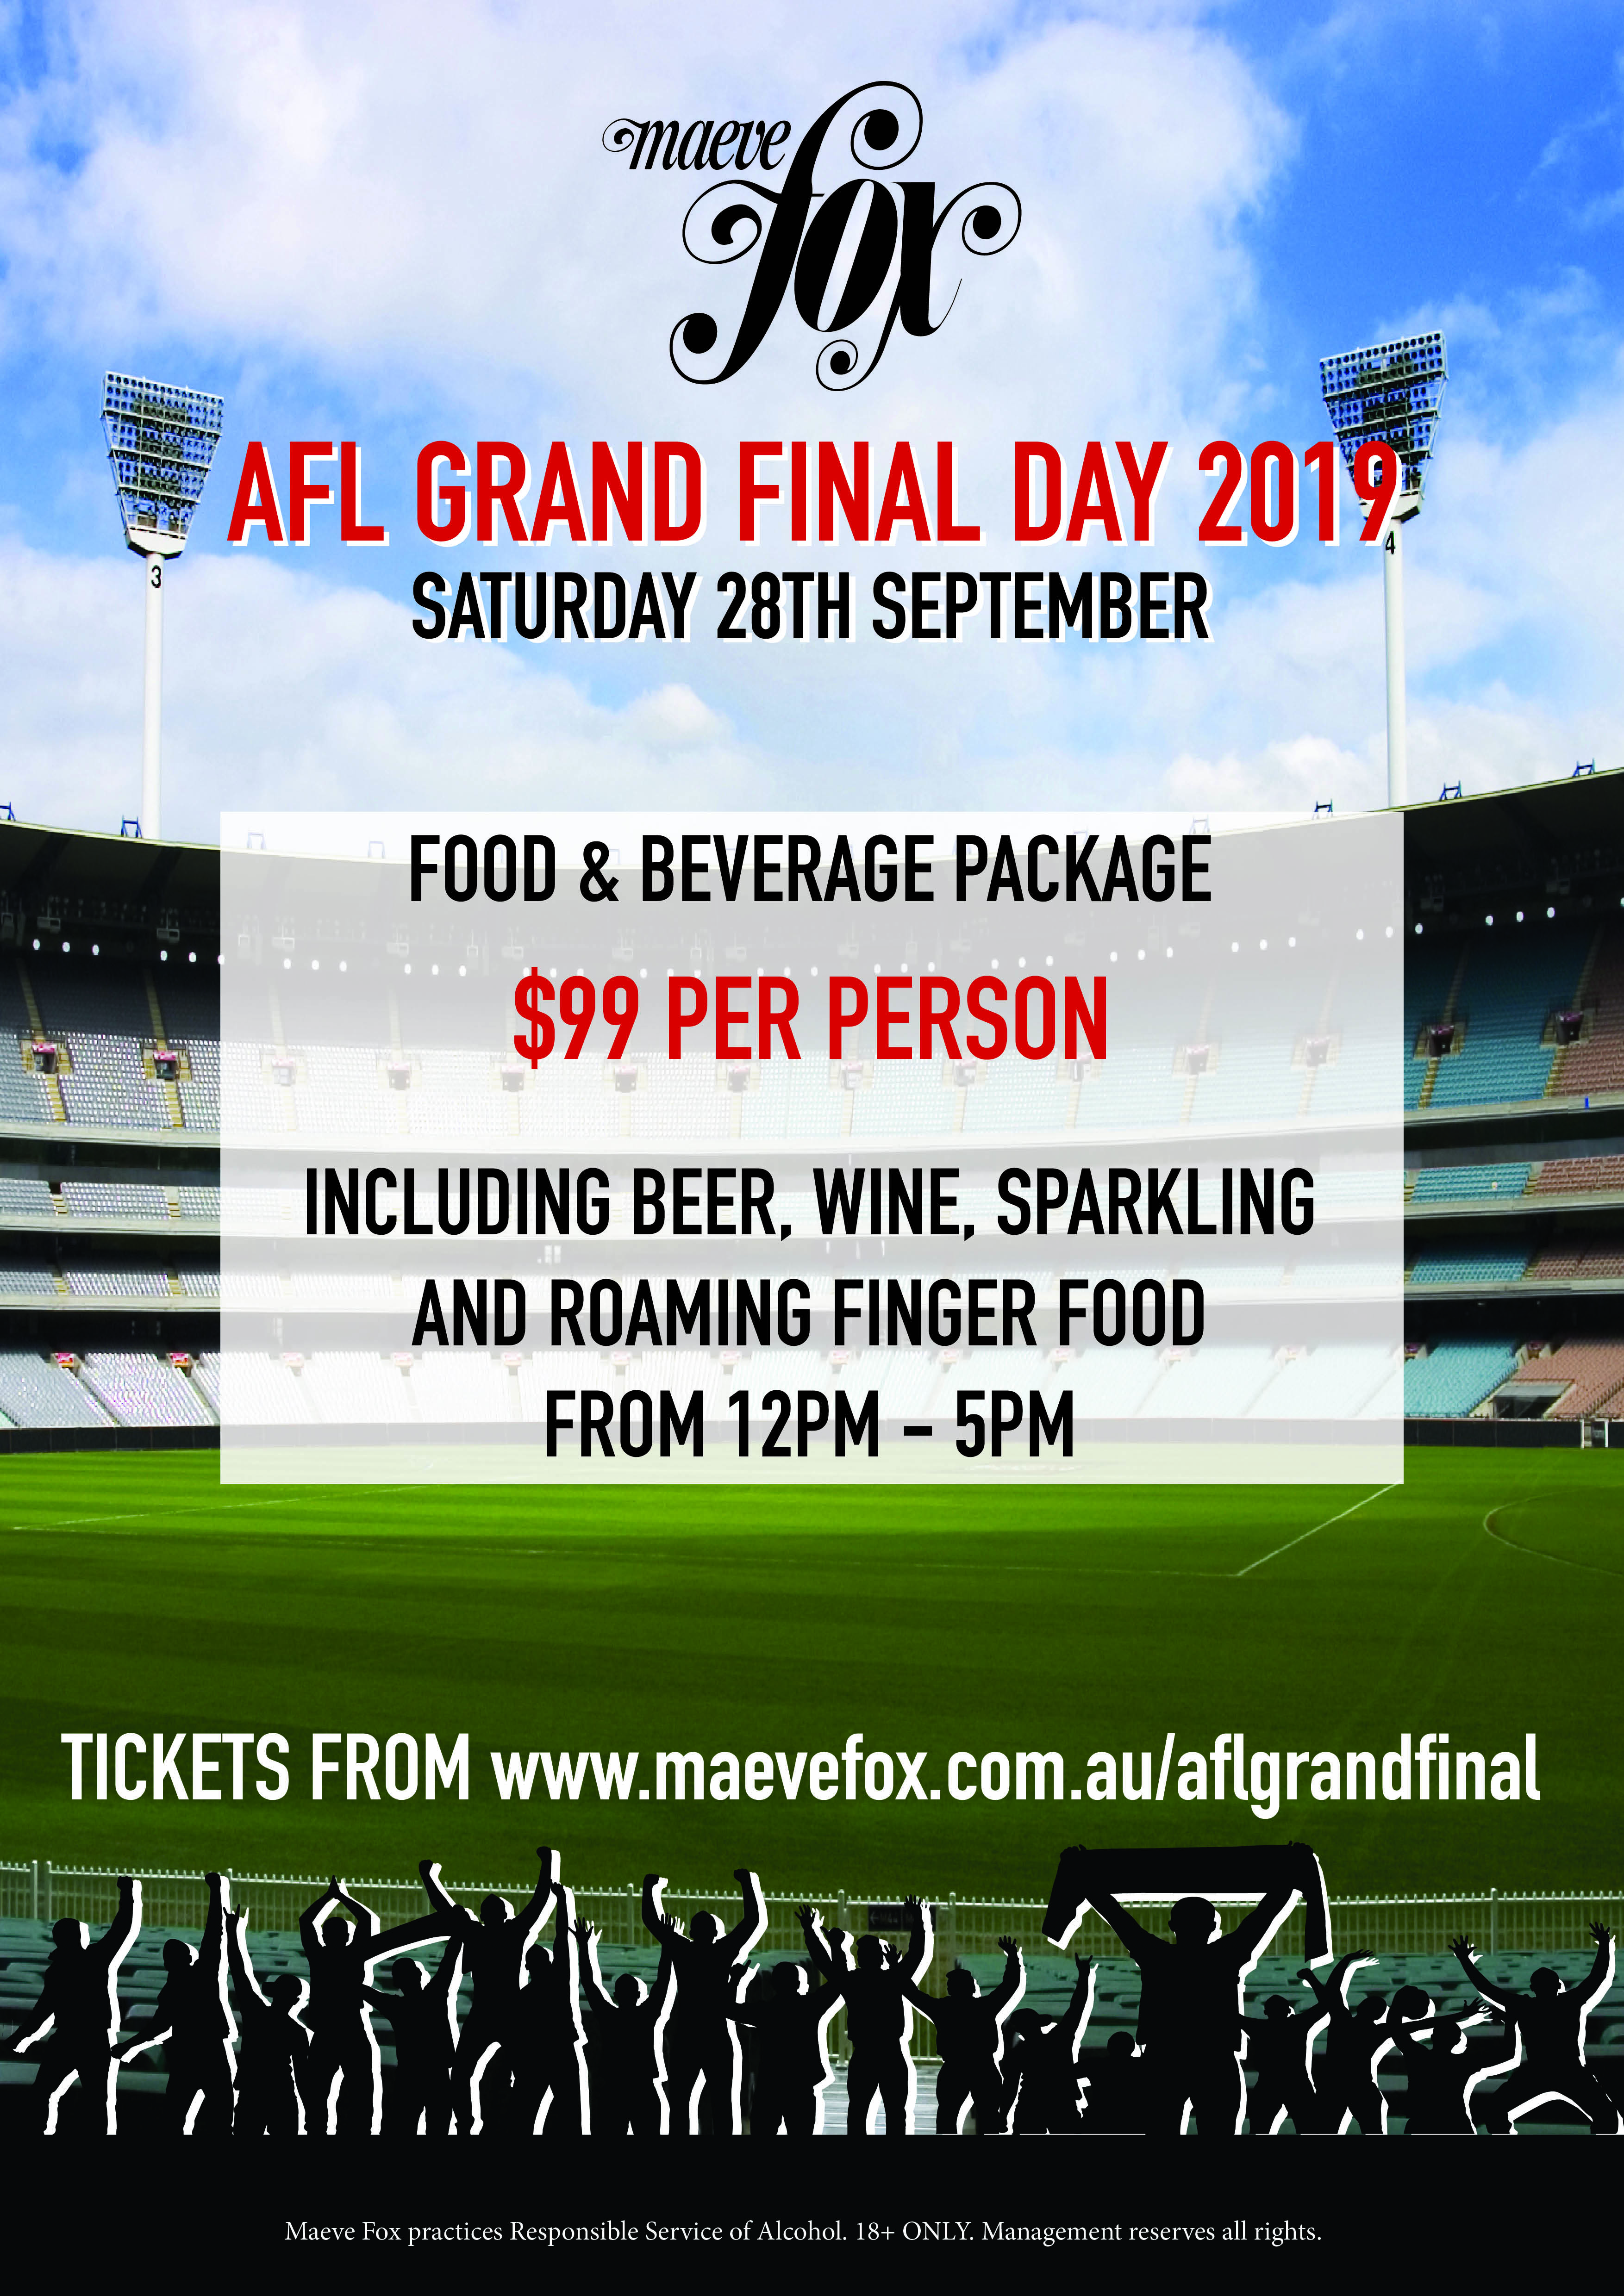 AFL Grand Final Day 2019 Food and beverage package at Maeve Fox